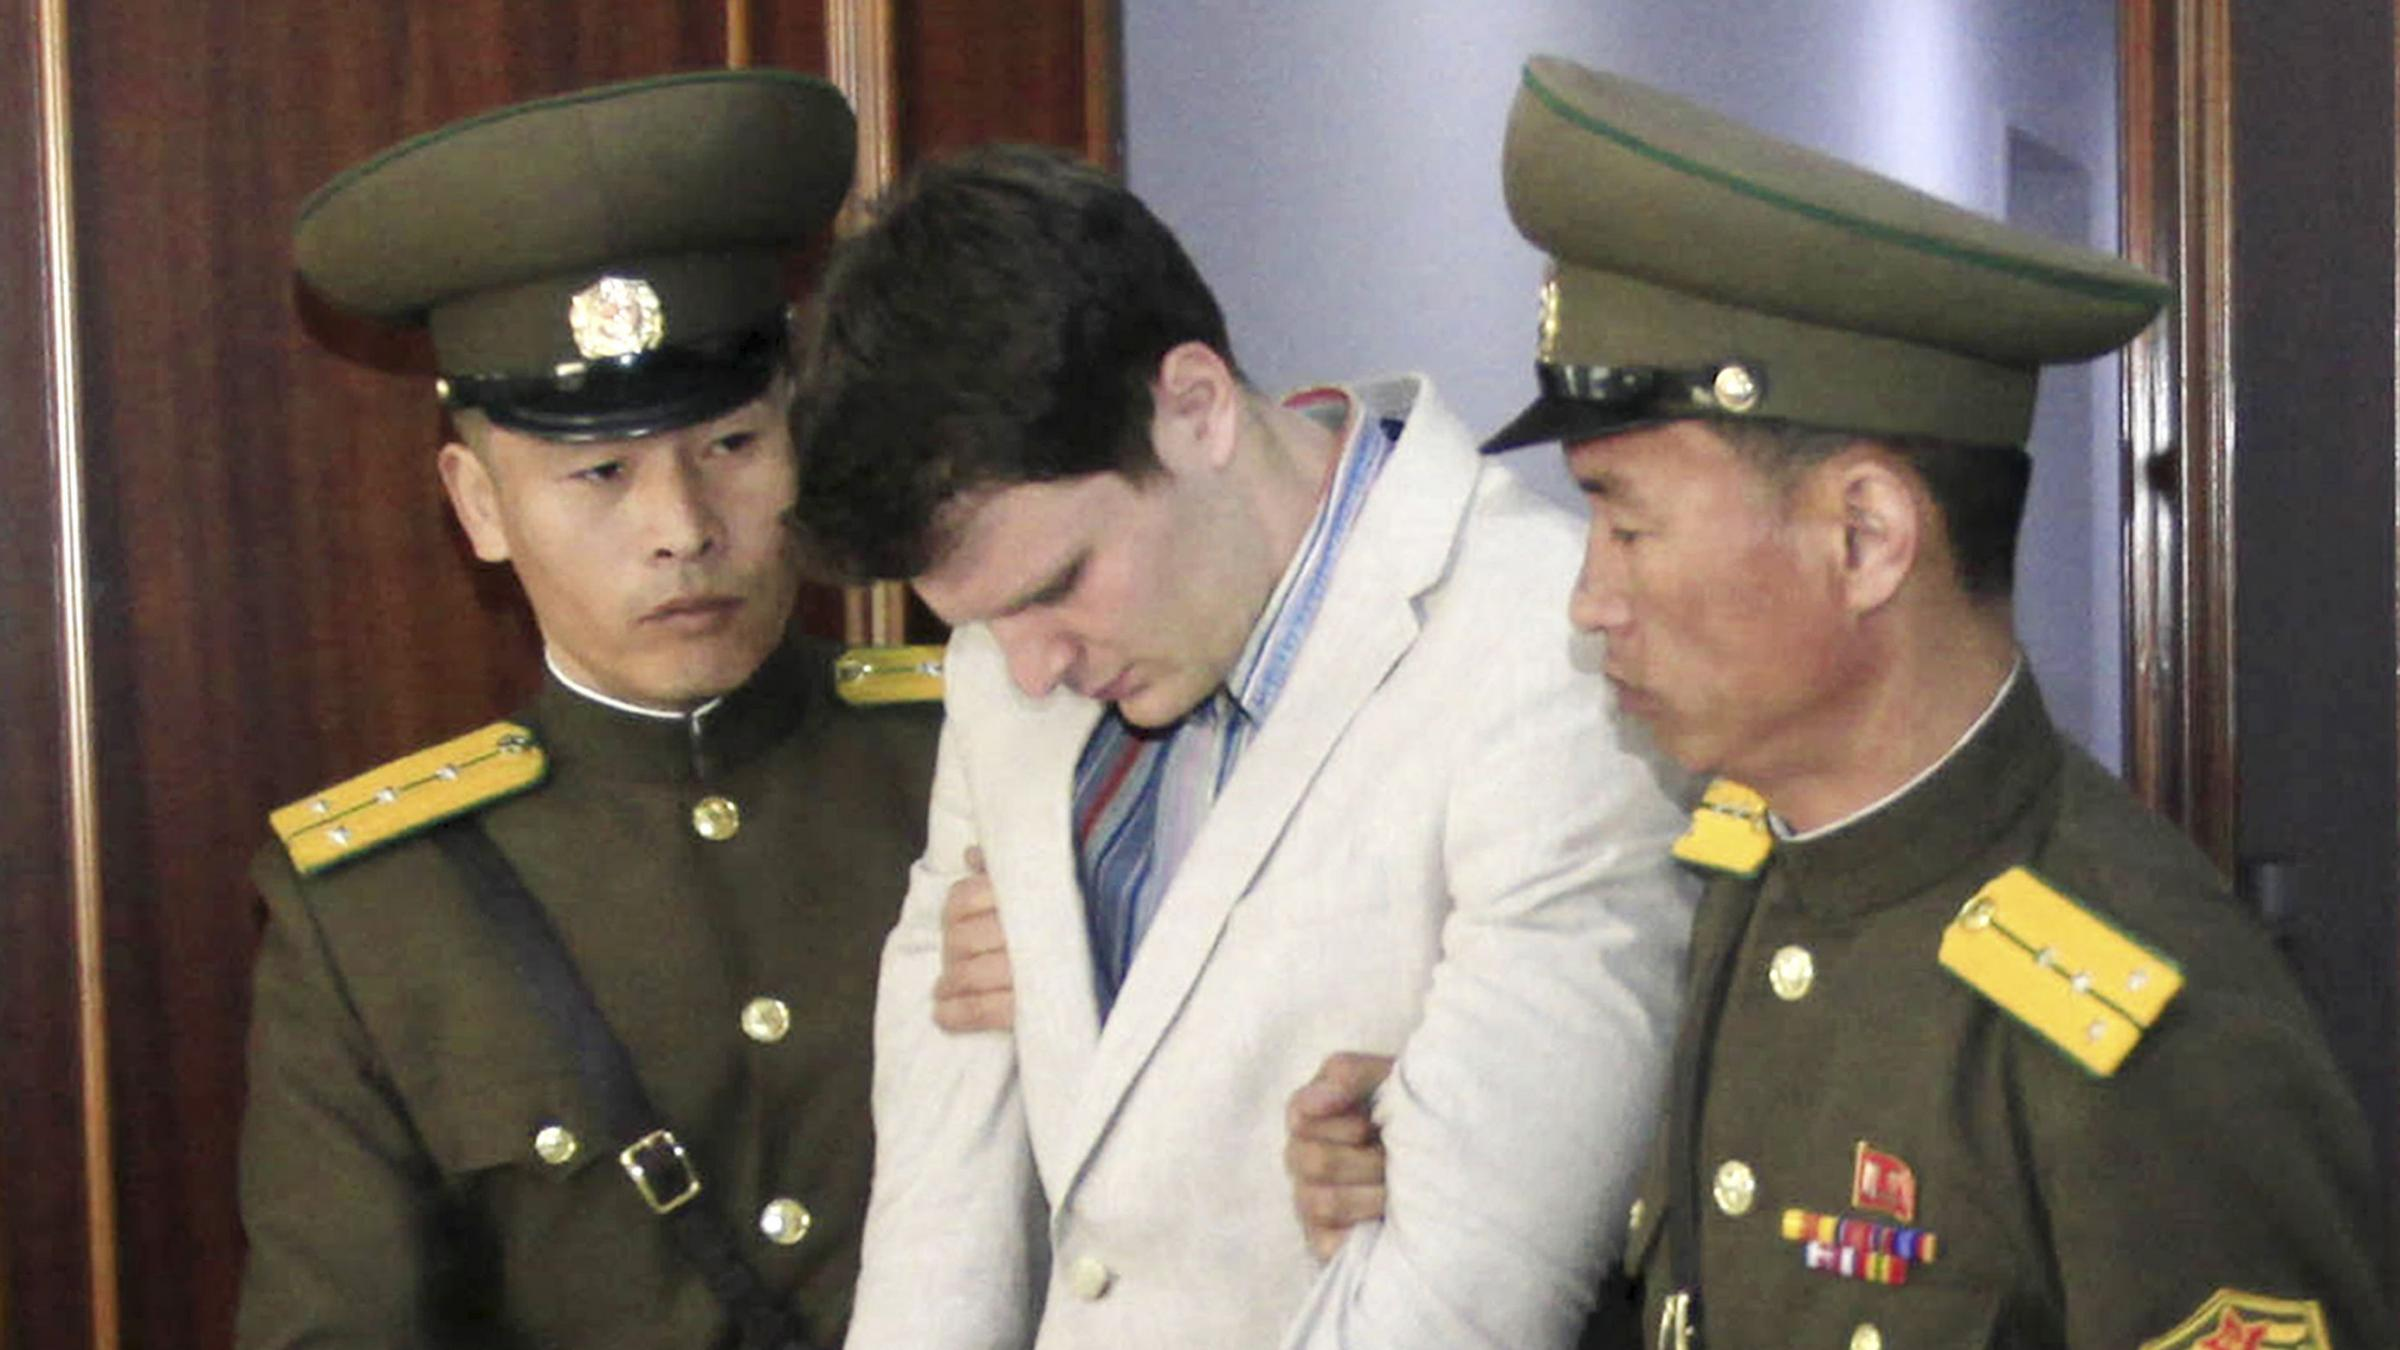 U.S. student, freed from North Korea with neurological injury, was 'brutalized' -father